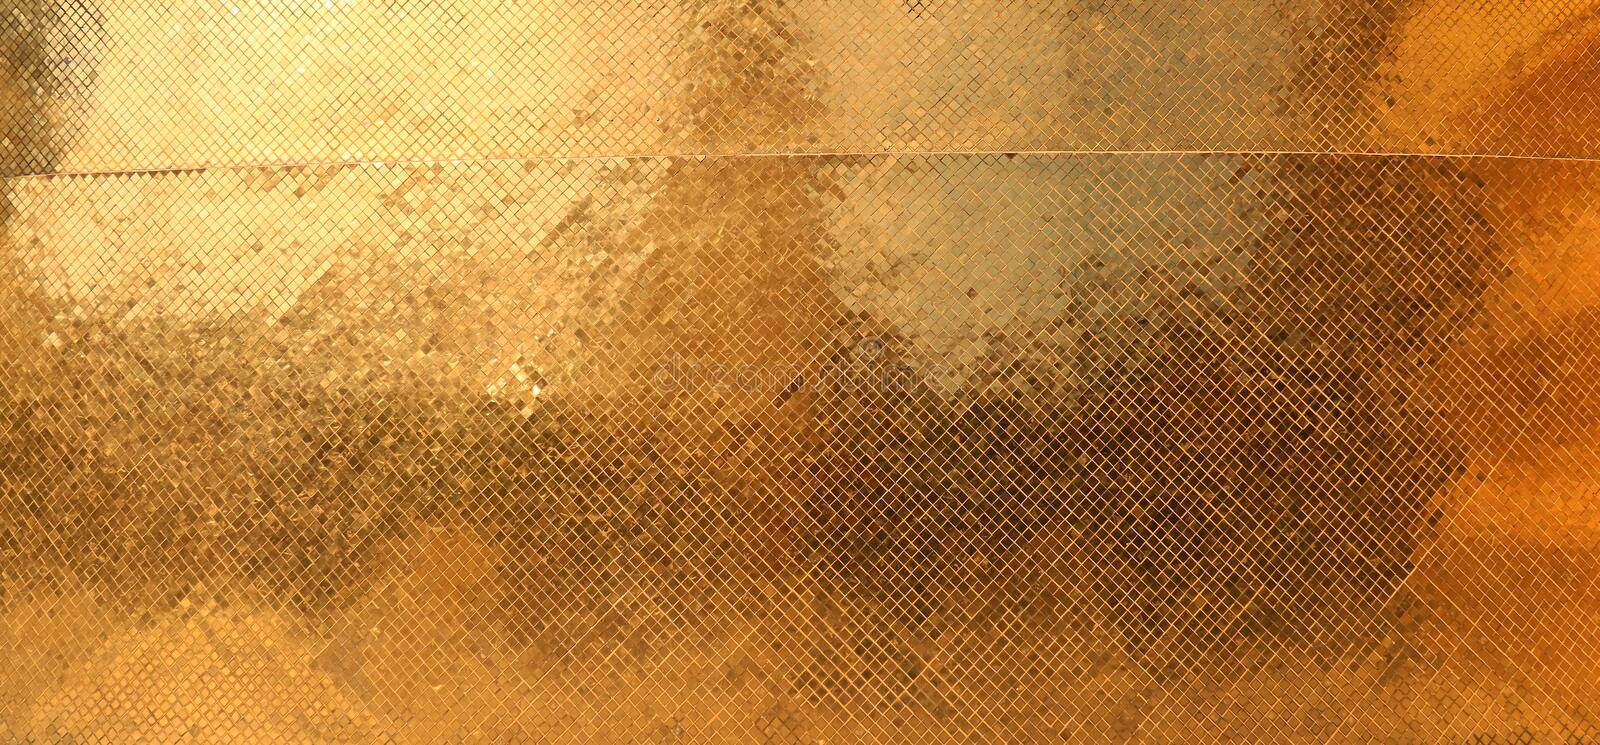 Scintillement de texture d'or image stock